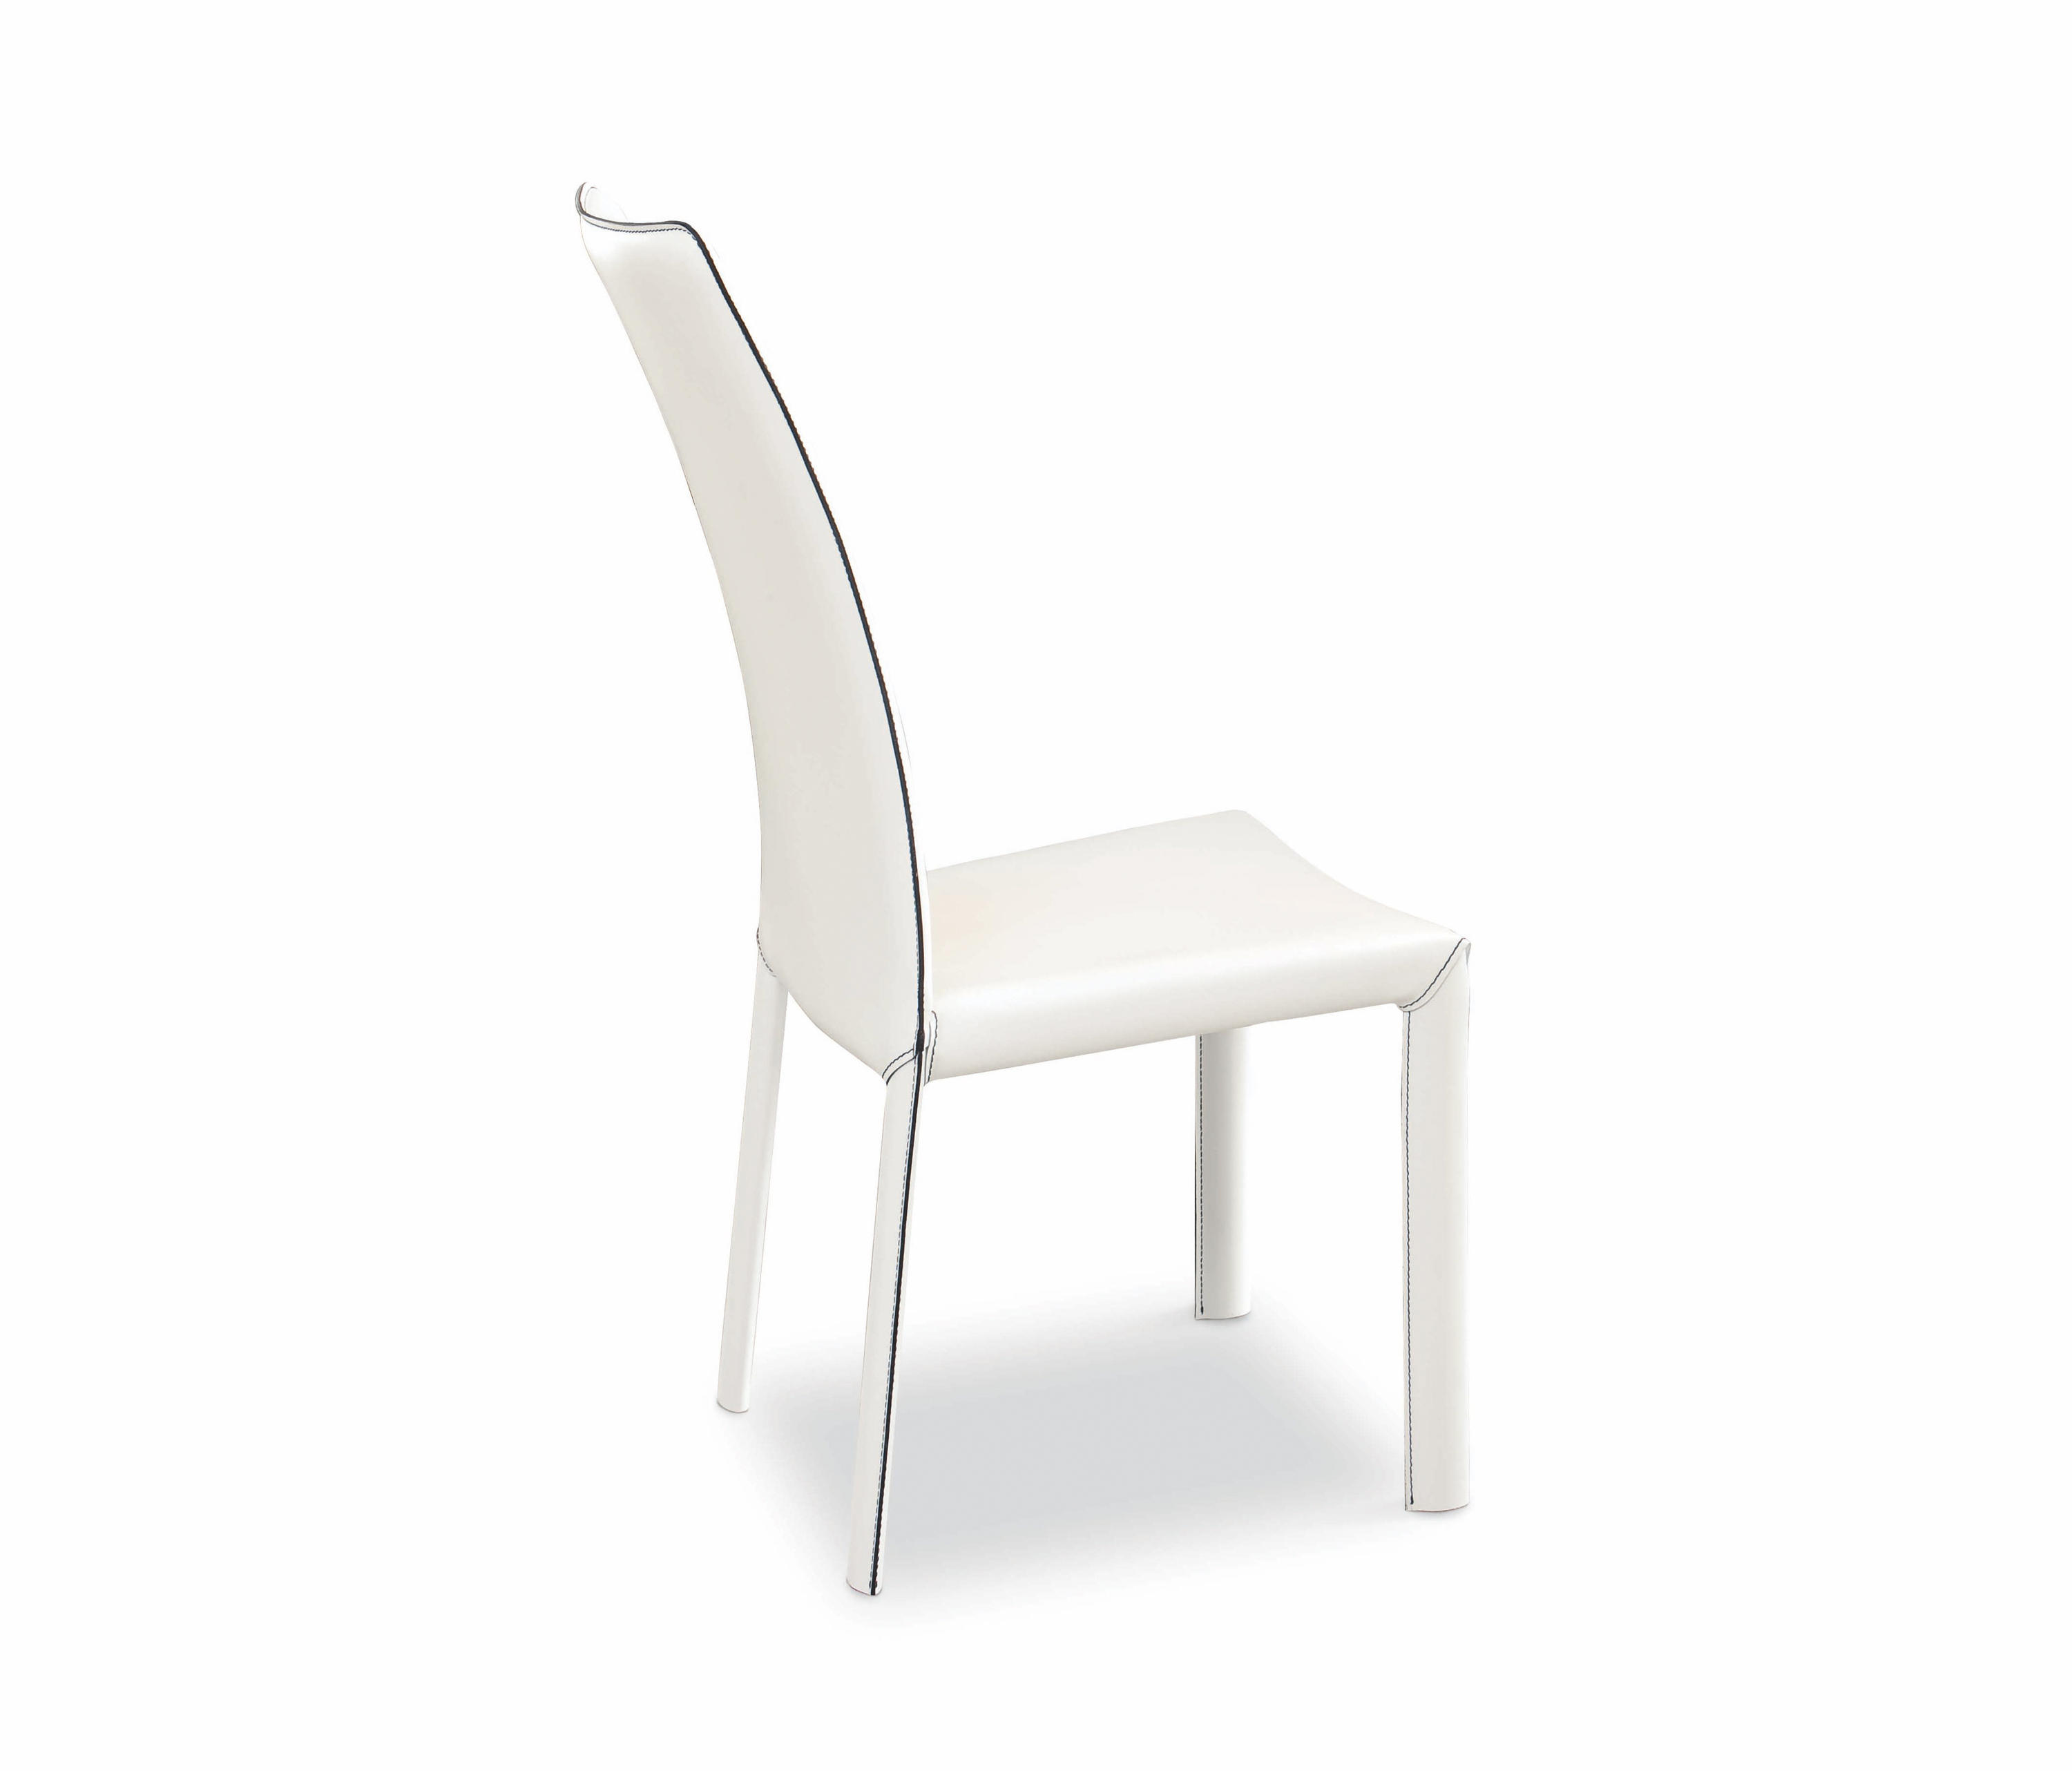 de ANGELINA Chaises BonaldoArchitonic de ANGELINA de ANGELINA ANGELINA BonaldoArchitonic BonaldoArchitonic Chaises Chaises n8kwPXN0O